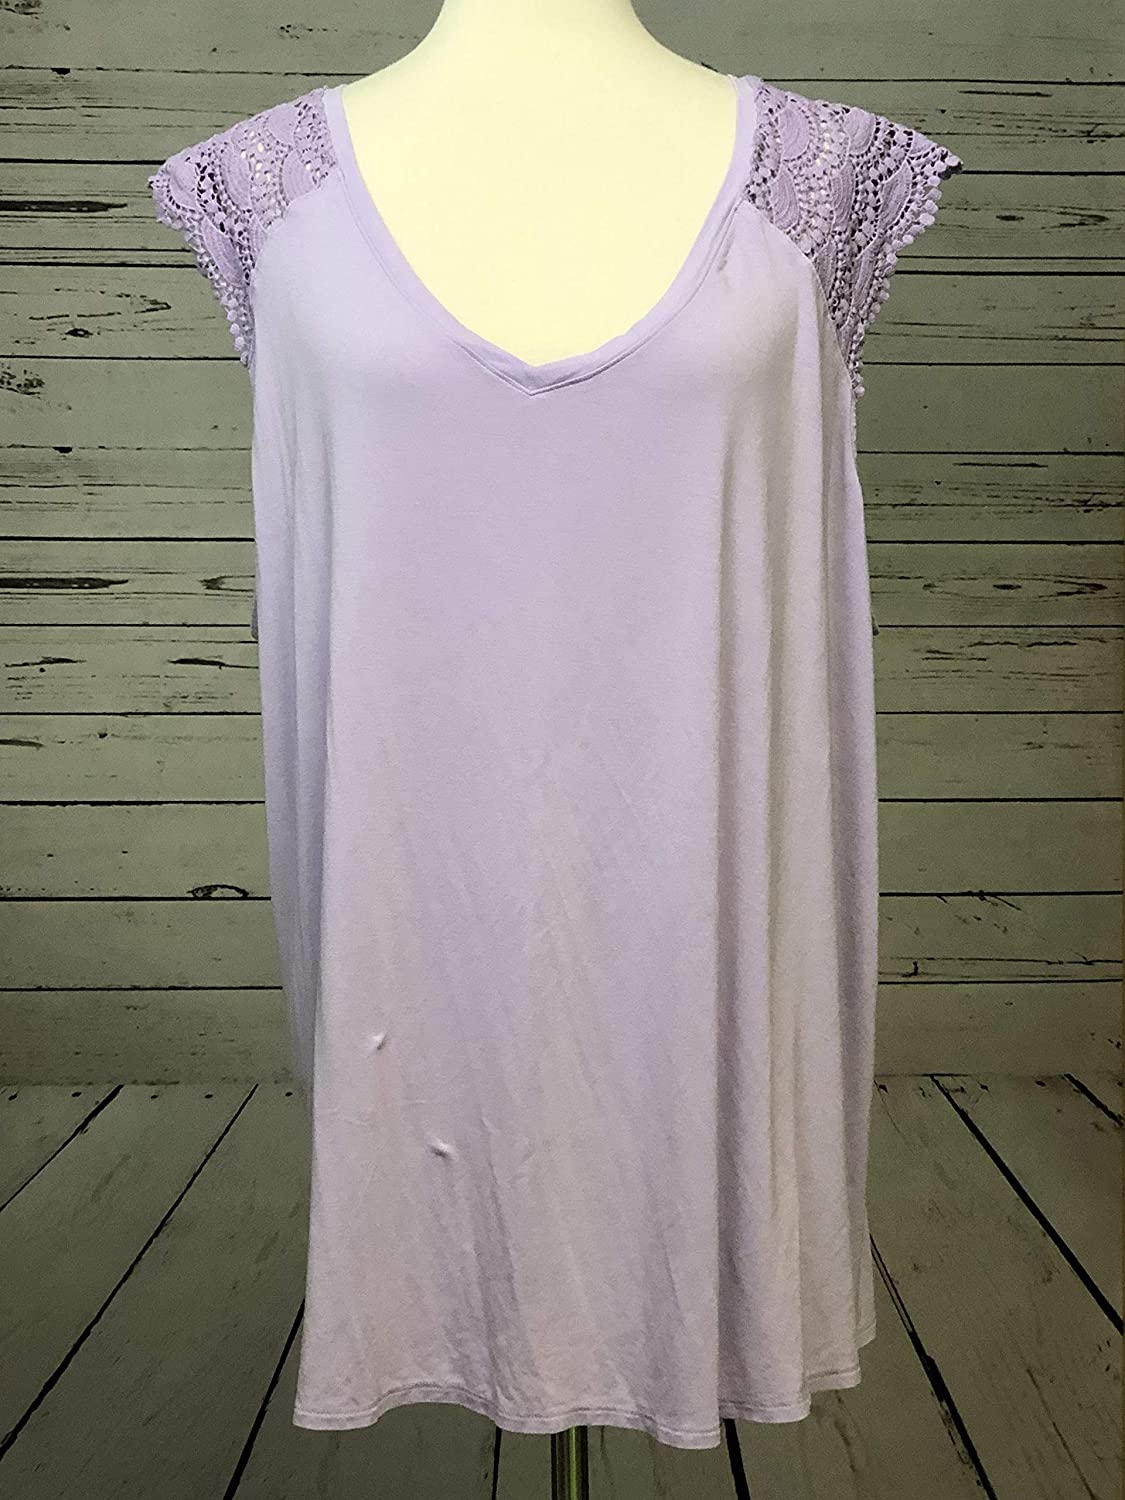 Ava Viv Womens Plus Size Sleeveless Tank Top Lace Shirt XXX-Large Purple